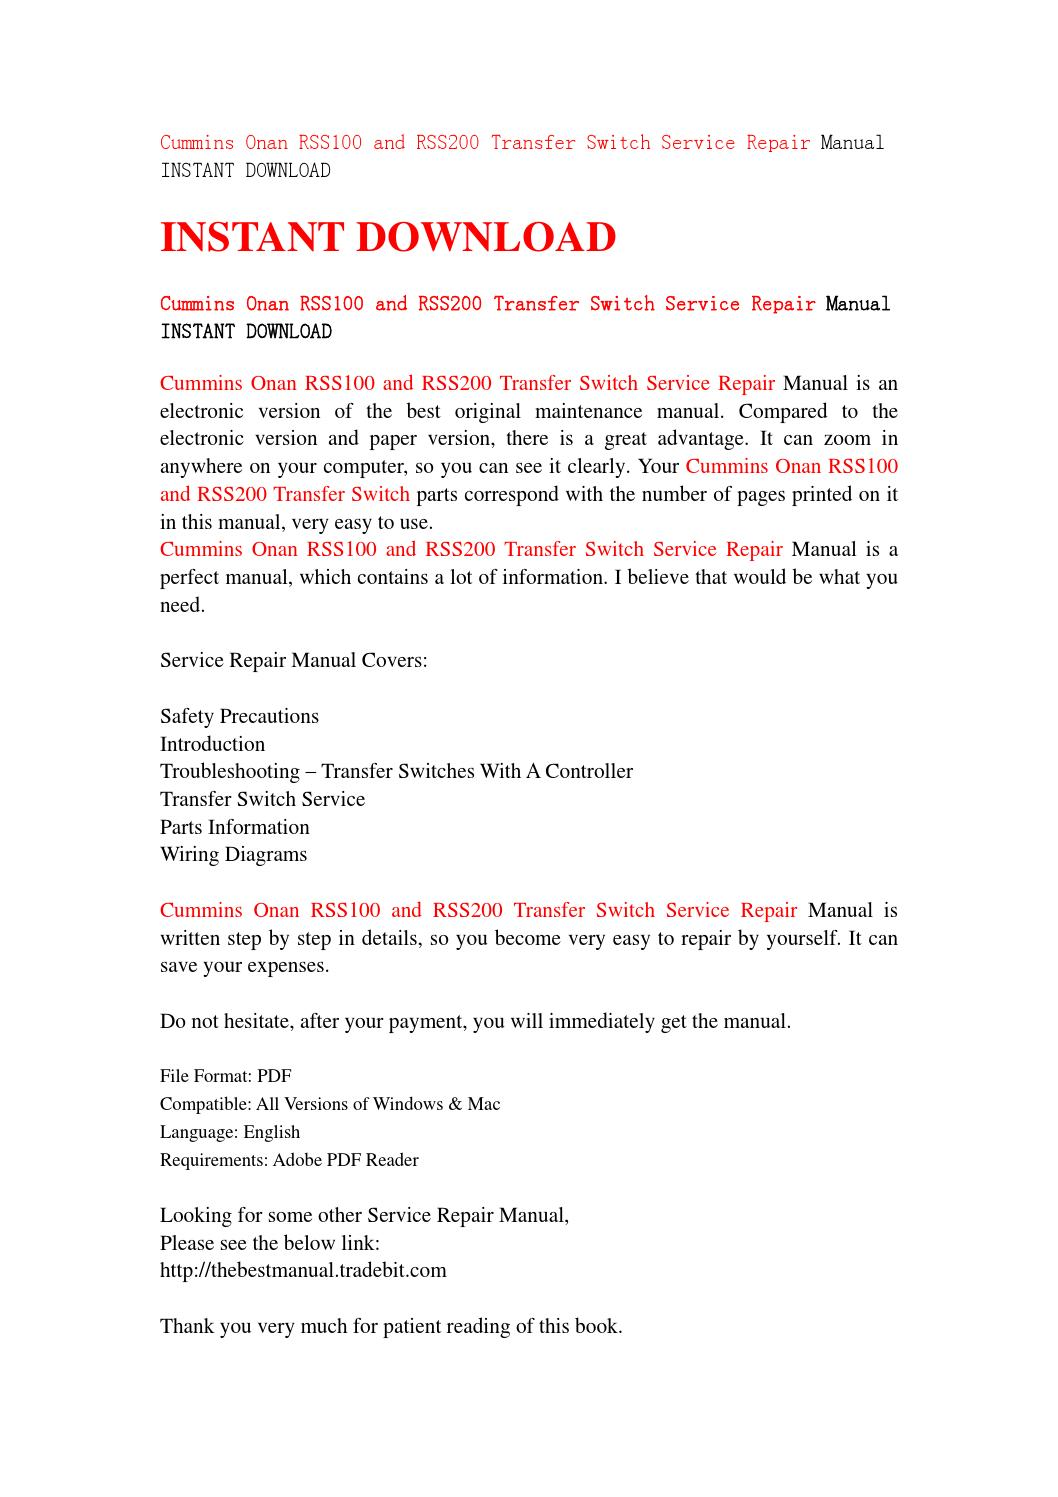 Cummins onan rss100 and rss200 transfer switch service repair manual  instant download by jfhsefjn - issuu